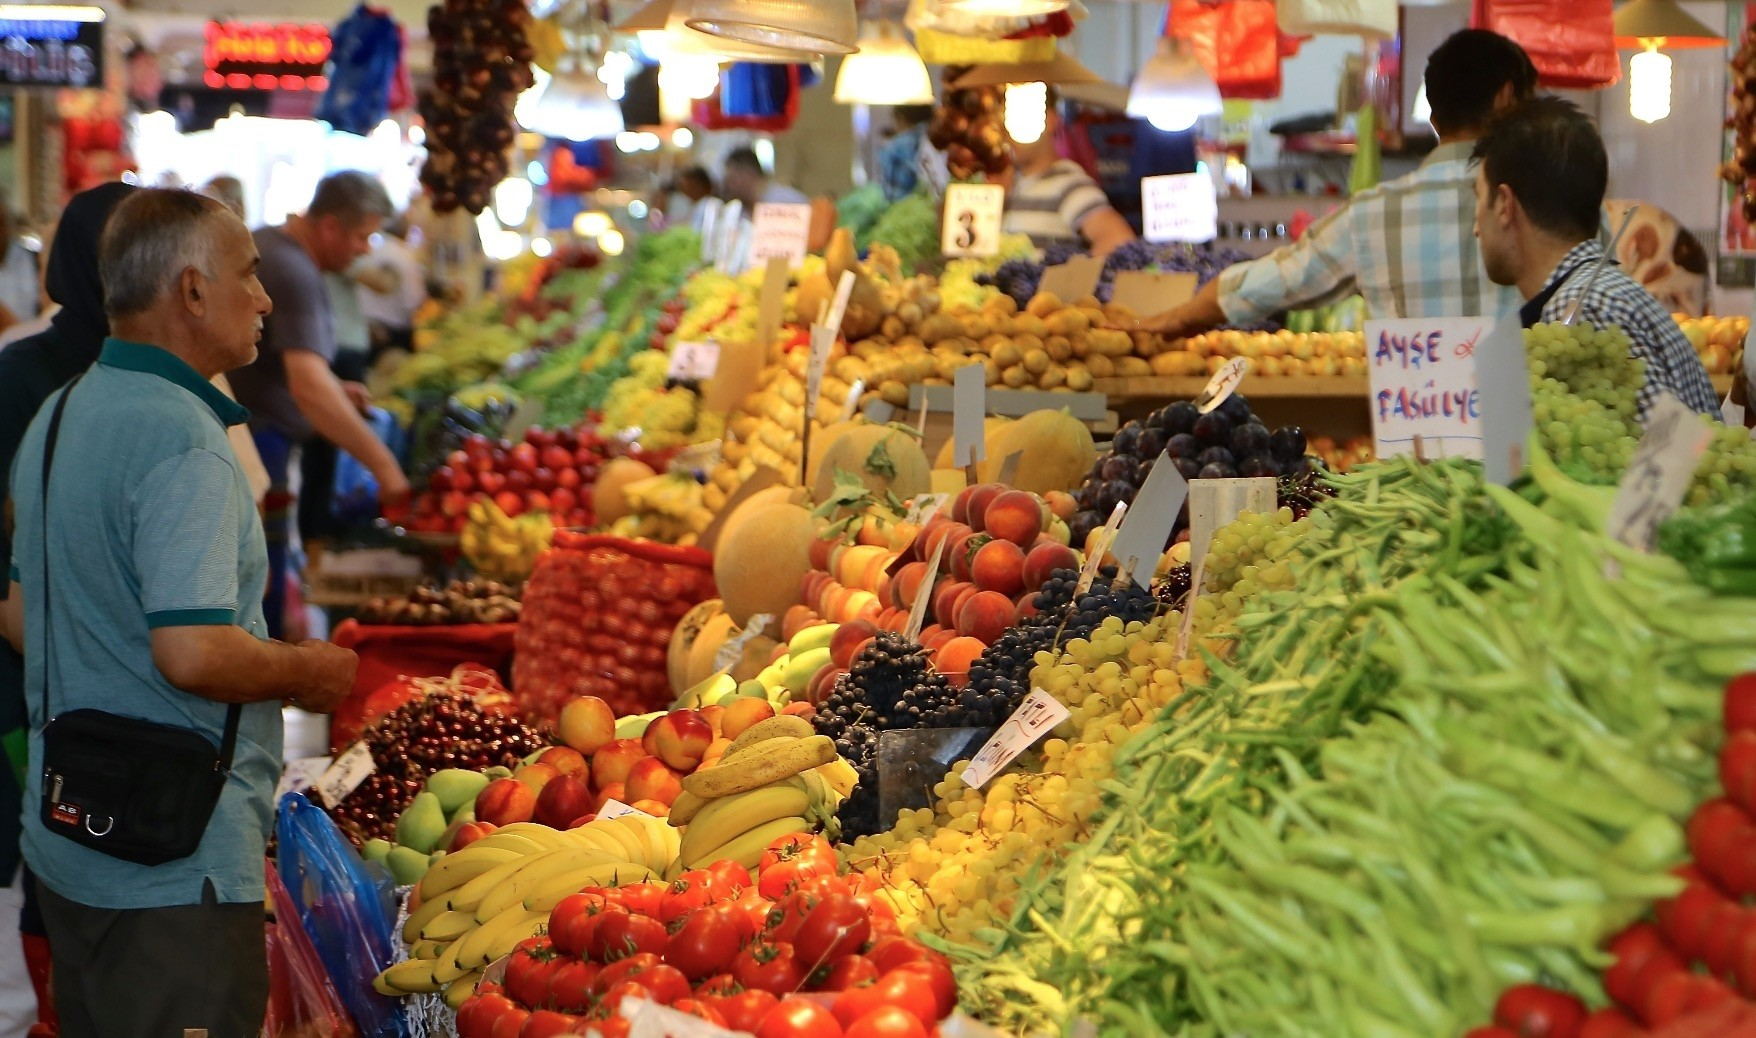 Inflation increased  24.52 percent in September year-on-year, up 6.3 percent from the previous month, according to data from the Turkish Statistical Institute (TurkStat).